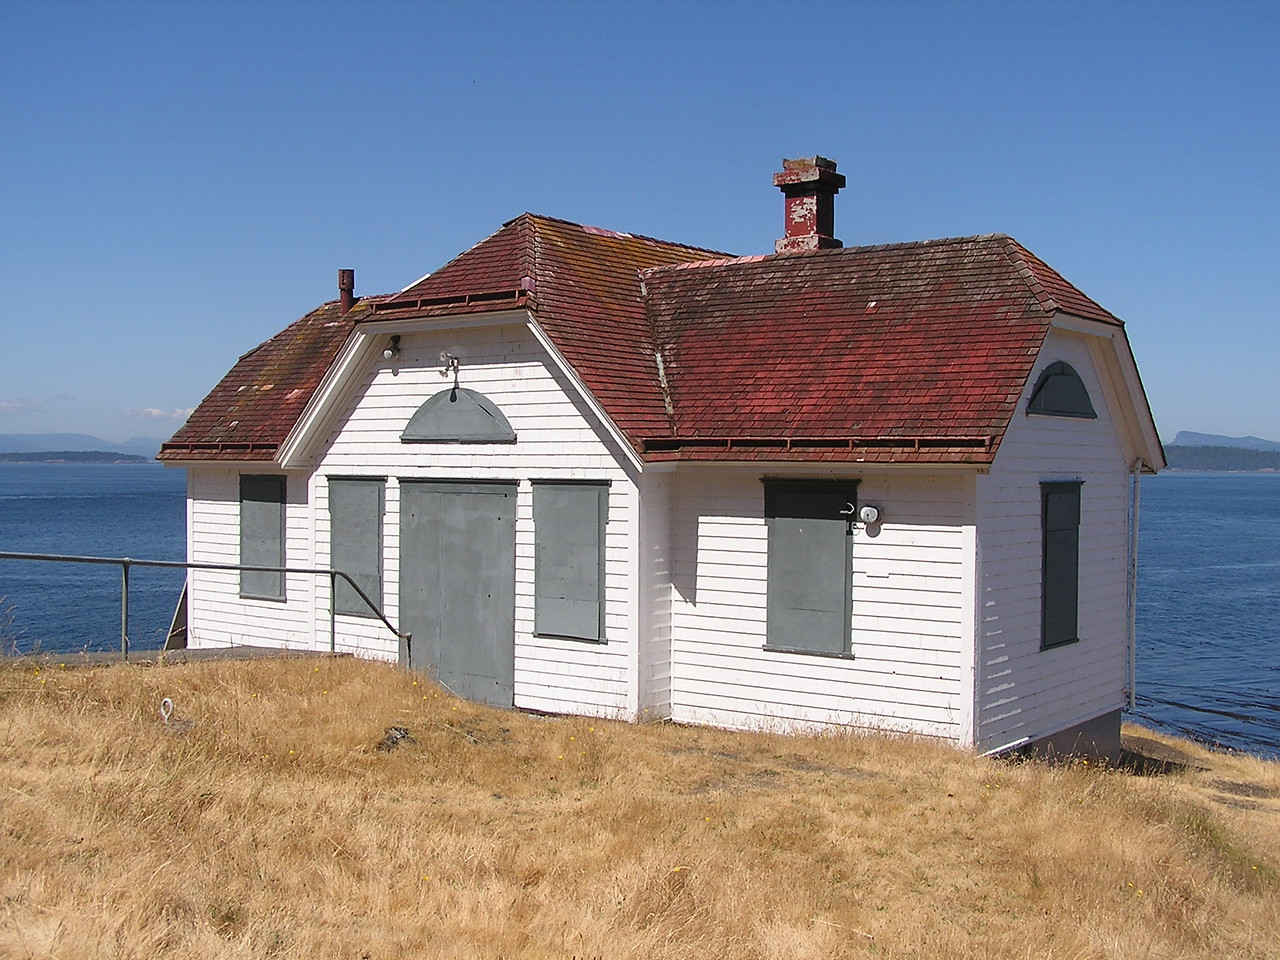 The abandoned Turn Point Lighthouse